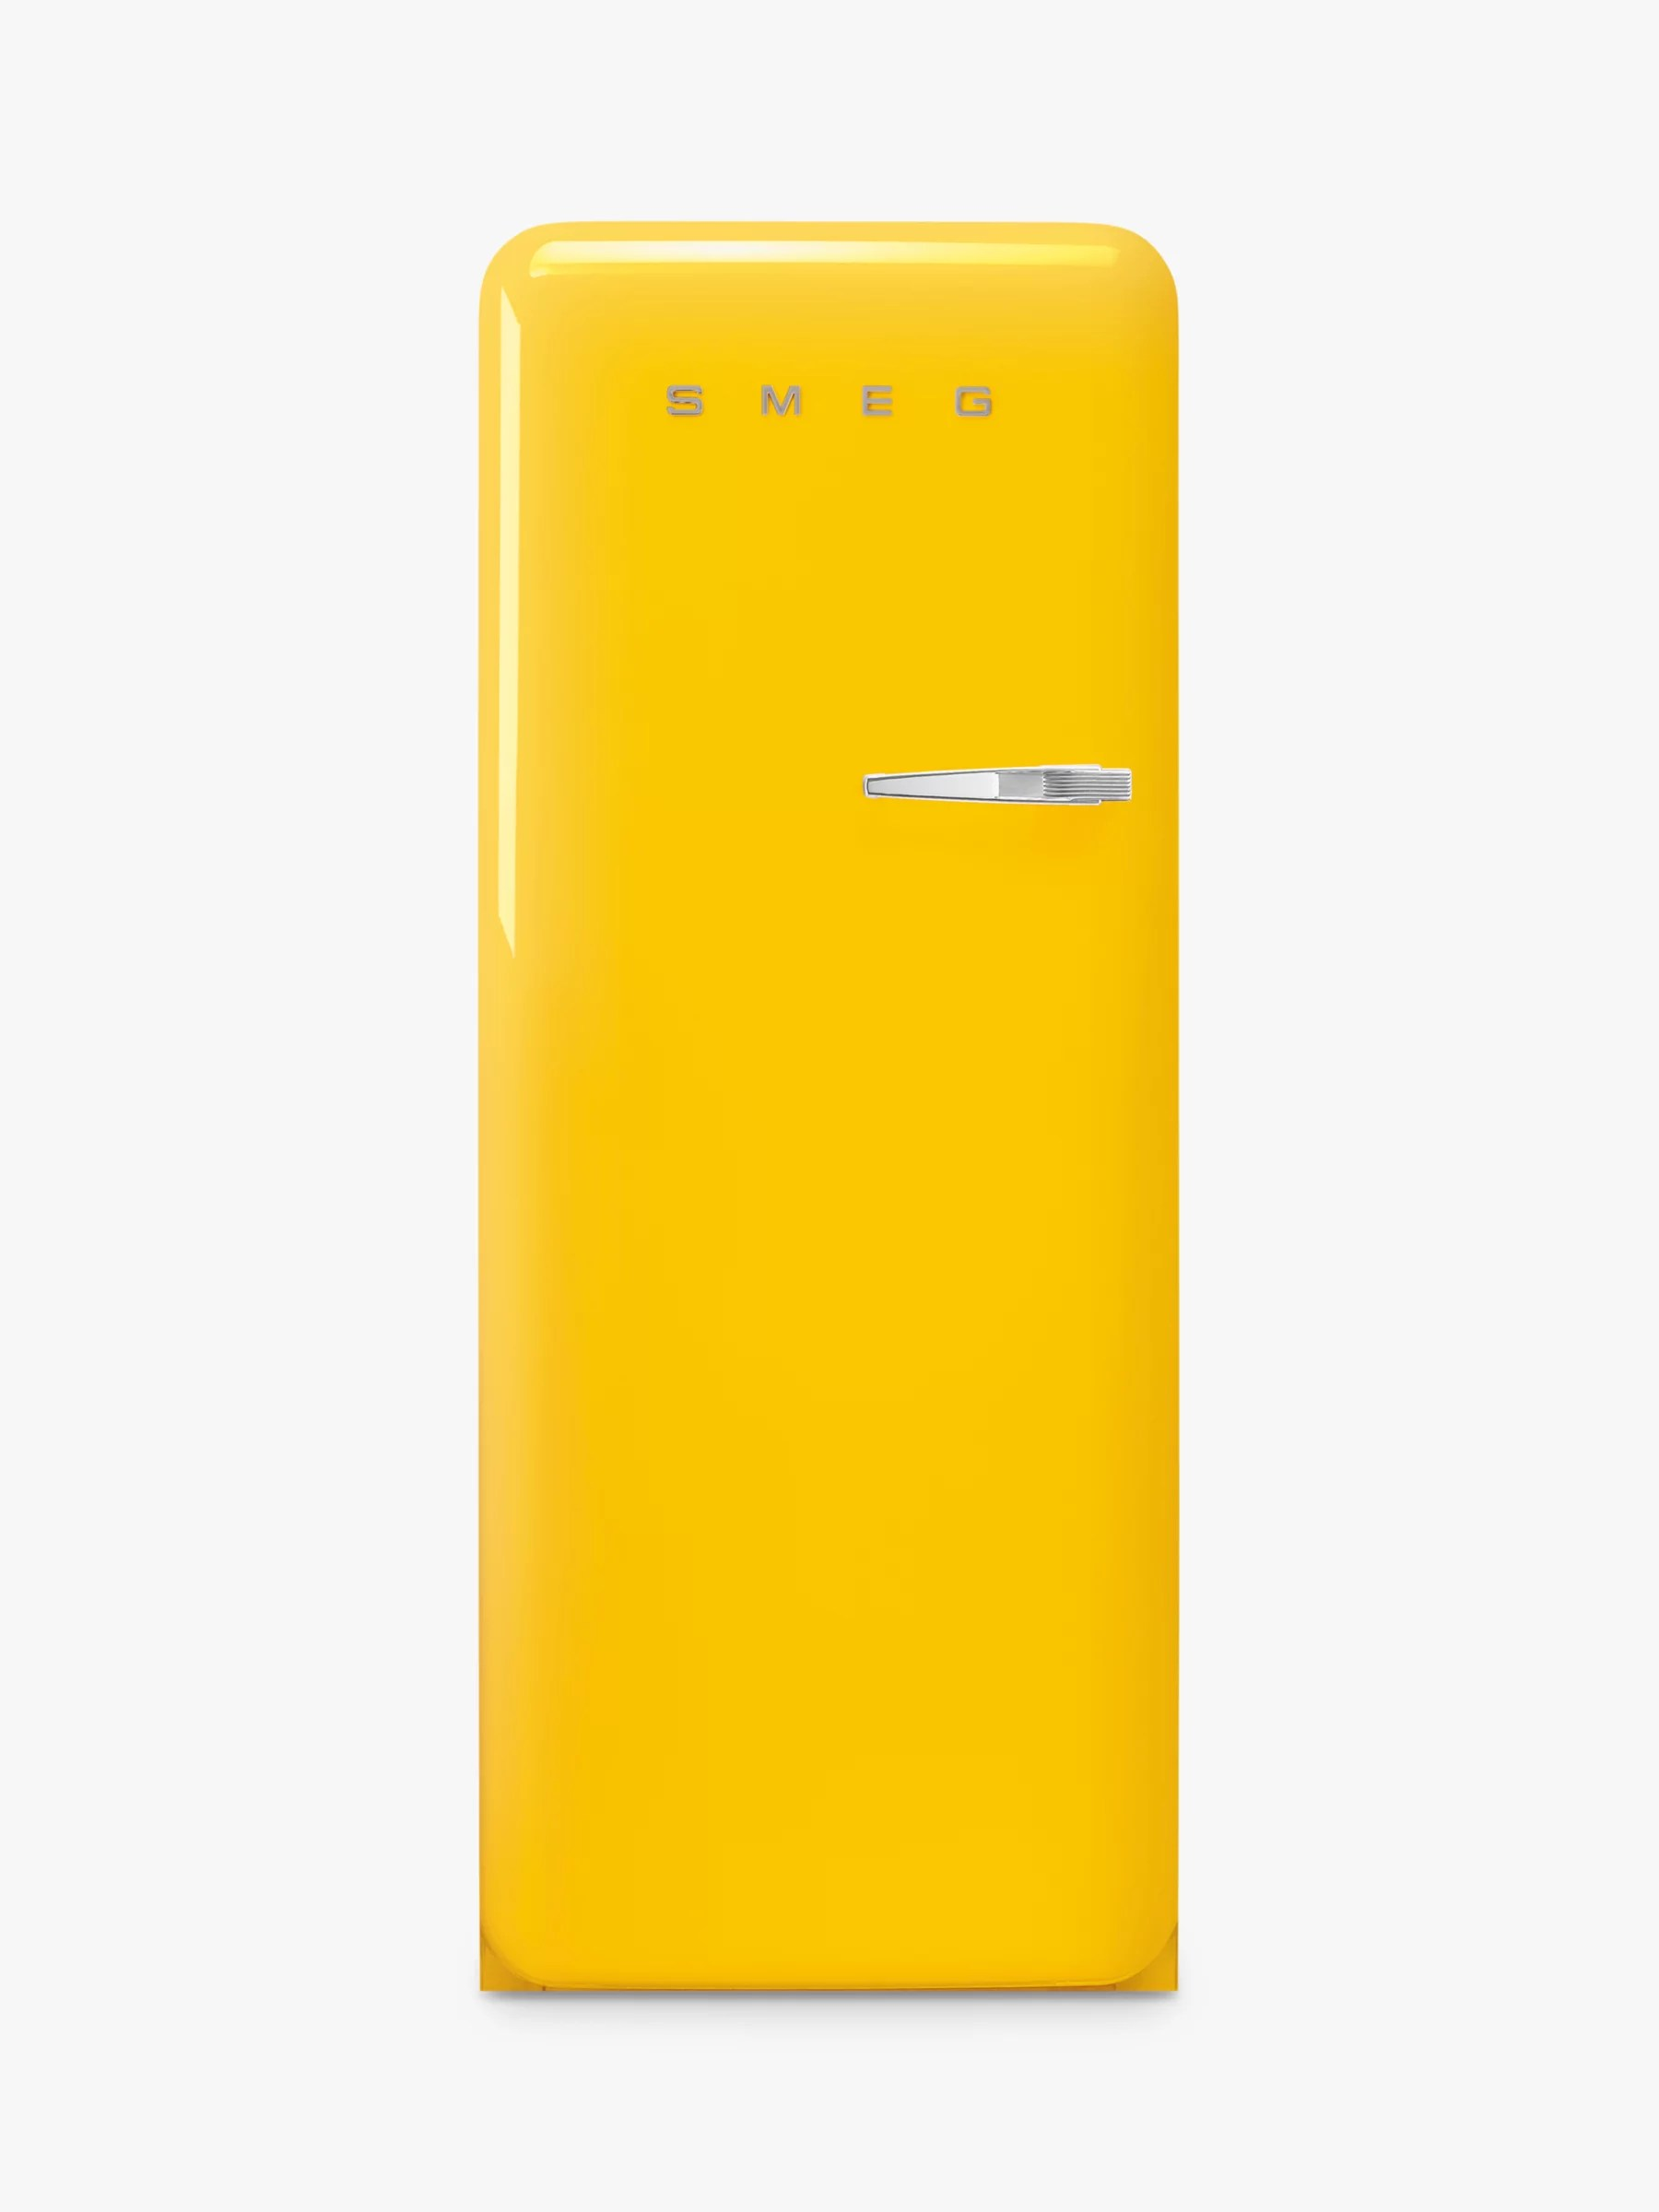 Yellow Fridge Freezer Smeg Fab28l Freestanding Fridge With Freezer Compartment